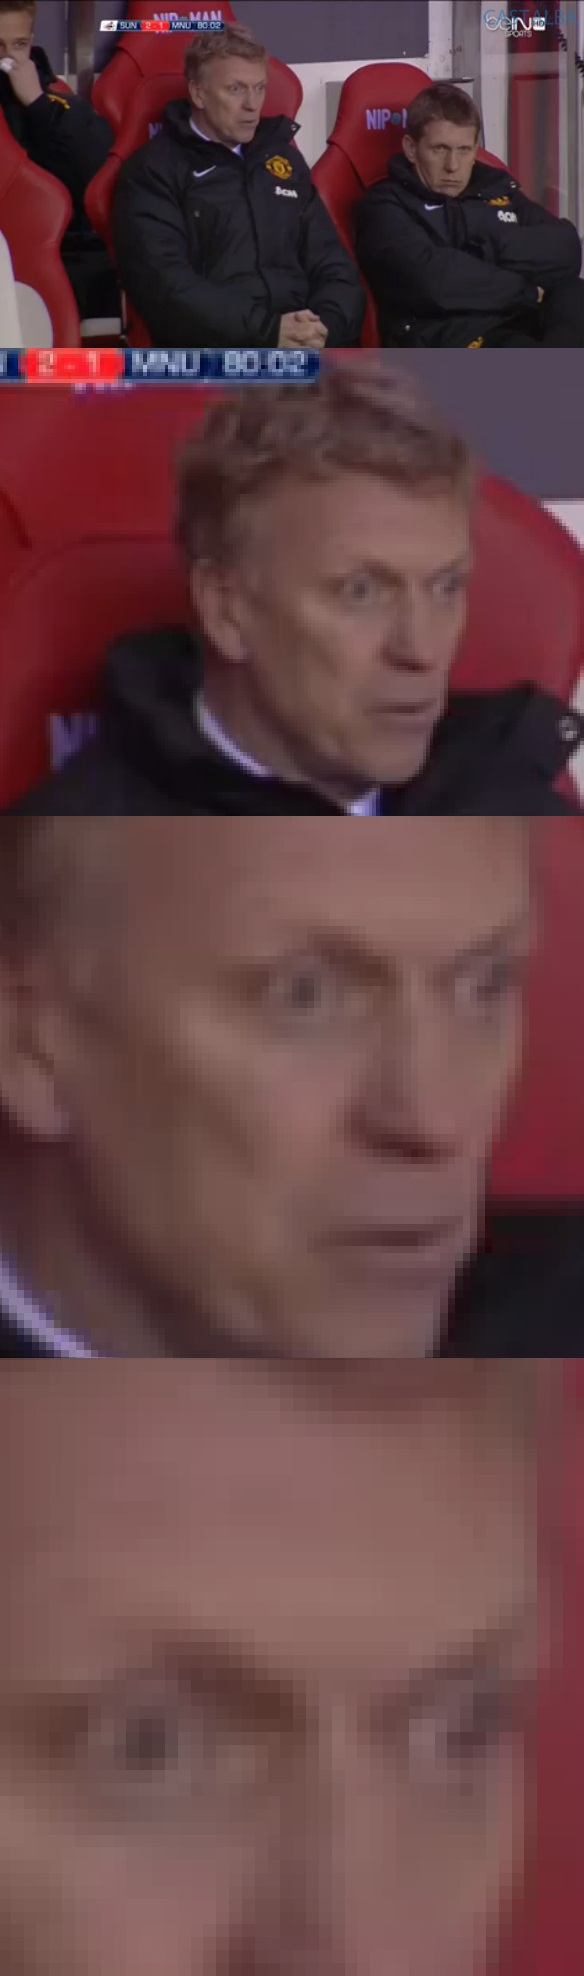 David Moyes is a Football Genius - Page 4 Screen21